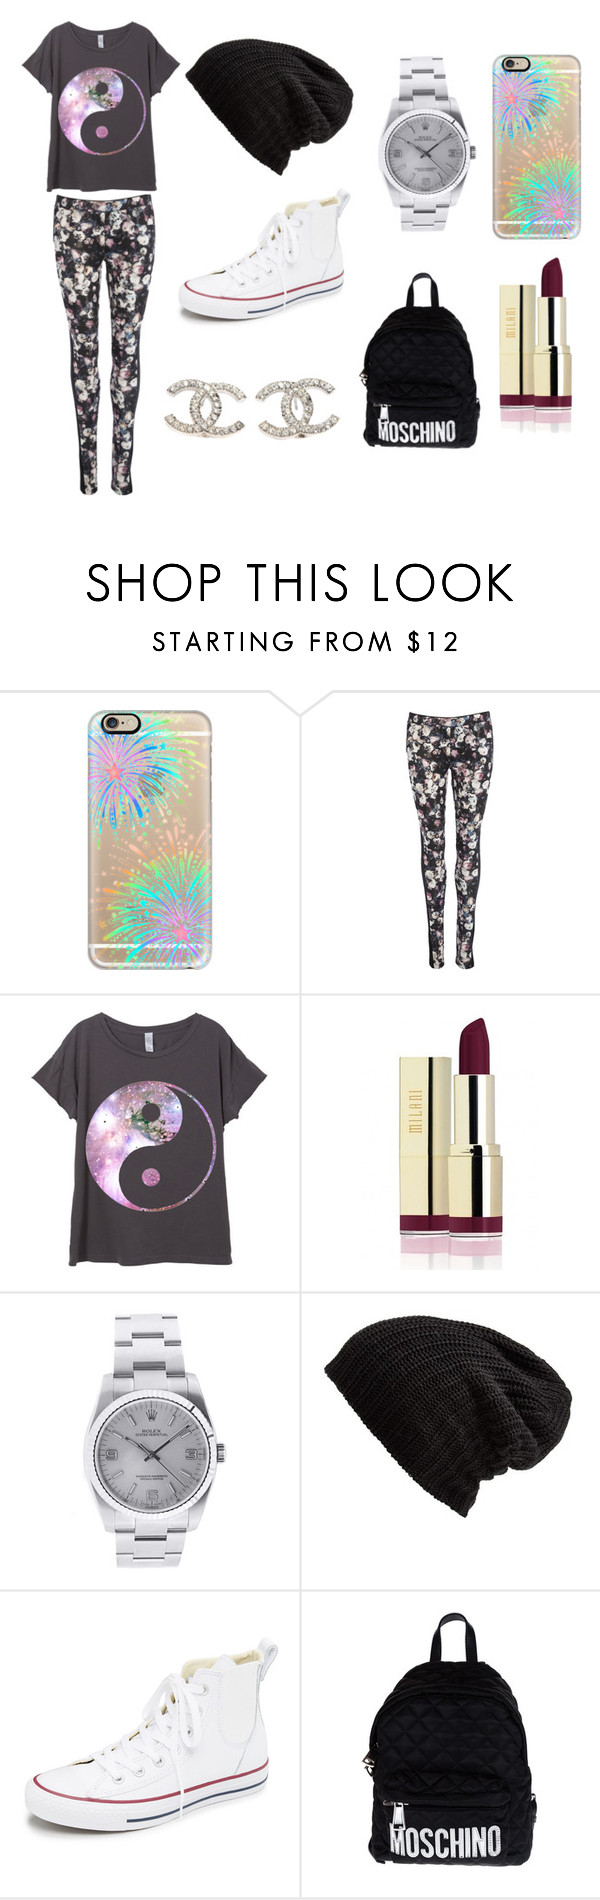 """Colorful and hot"" by mtvlover27 ❤ liked on Polyvore featuring Casetify, Rolex, Free People, Converse, Moschino, Chanel and chic"